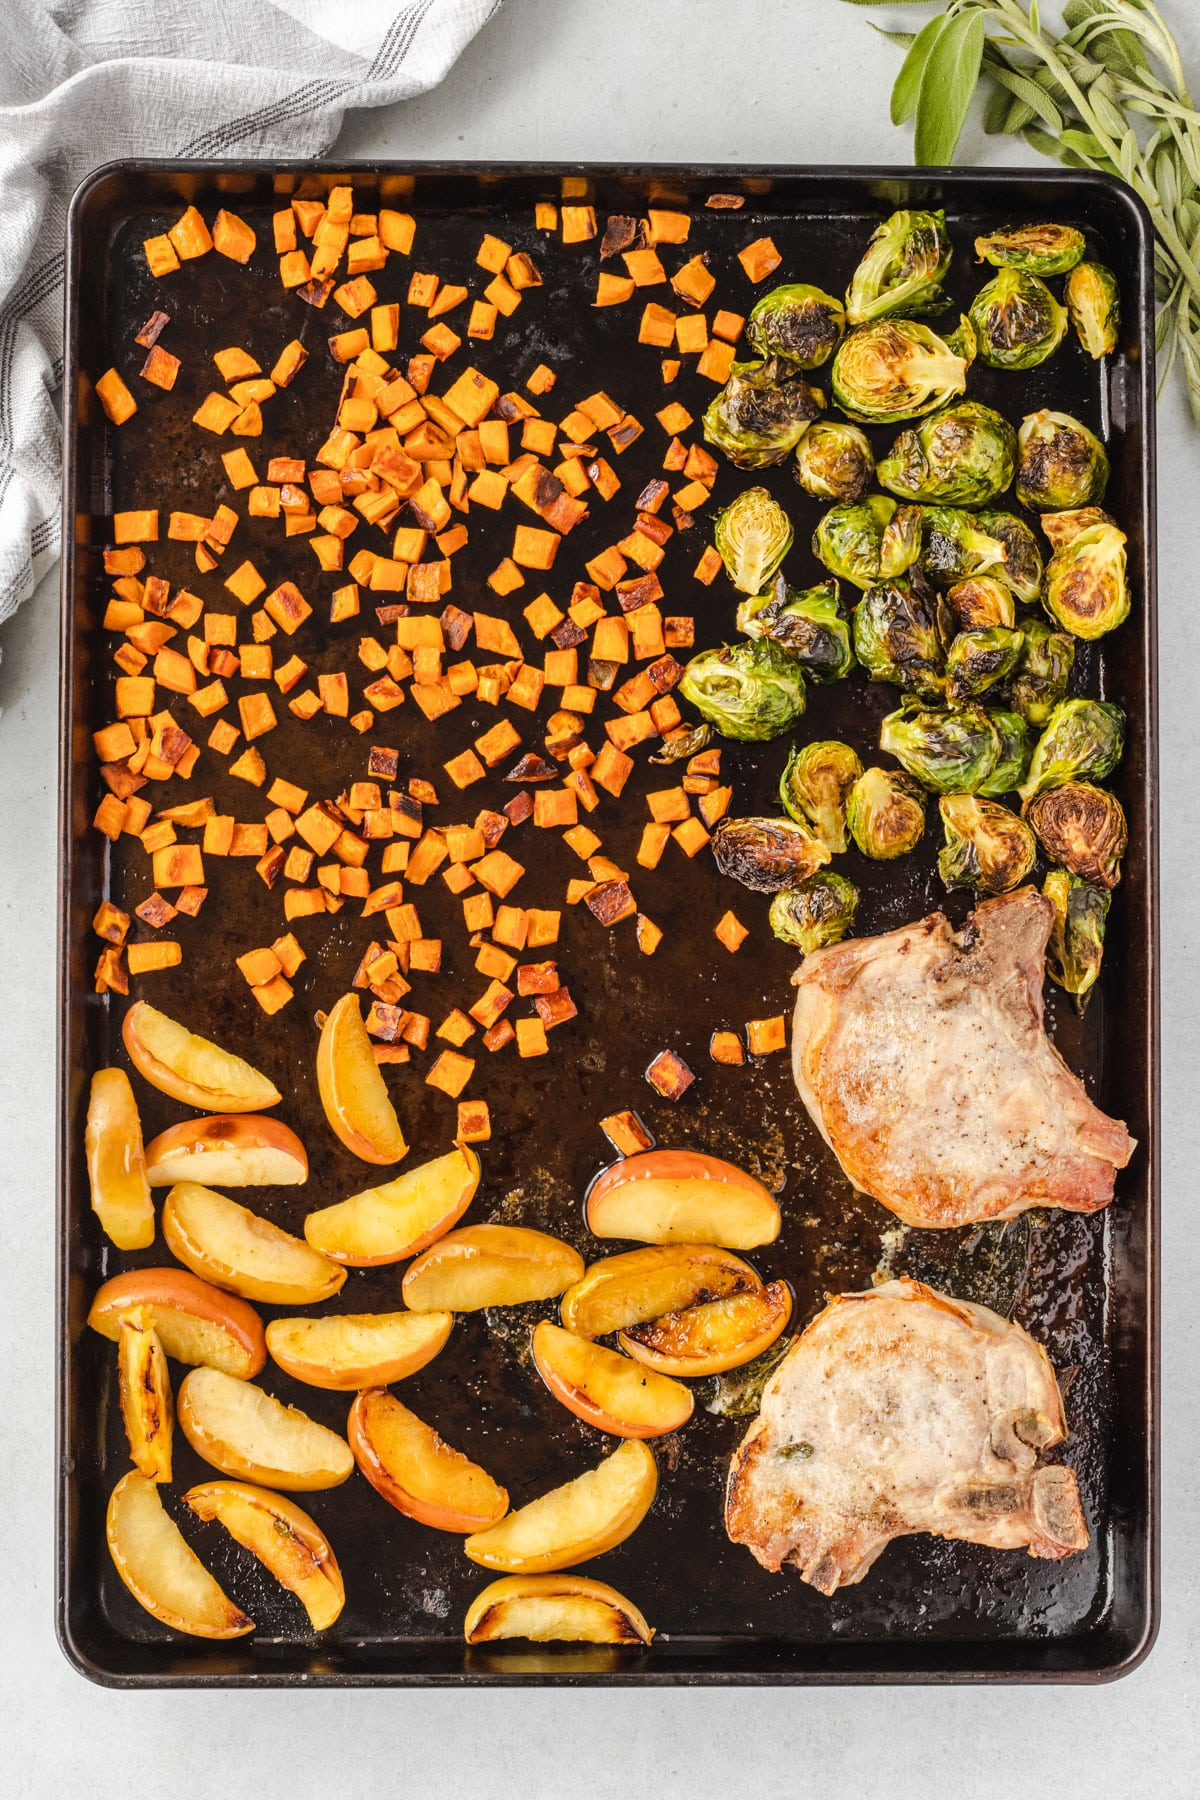 Overhead shot of sheer pan with roated vegetables, apples, and pork.